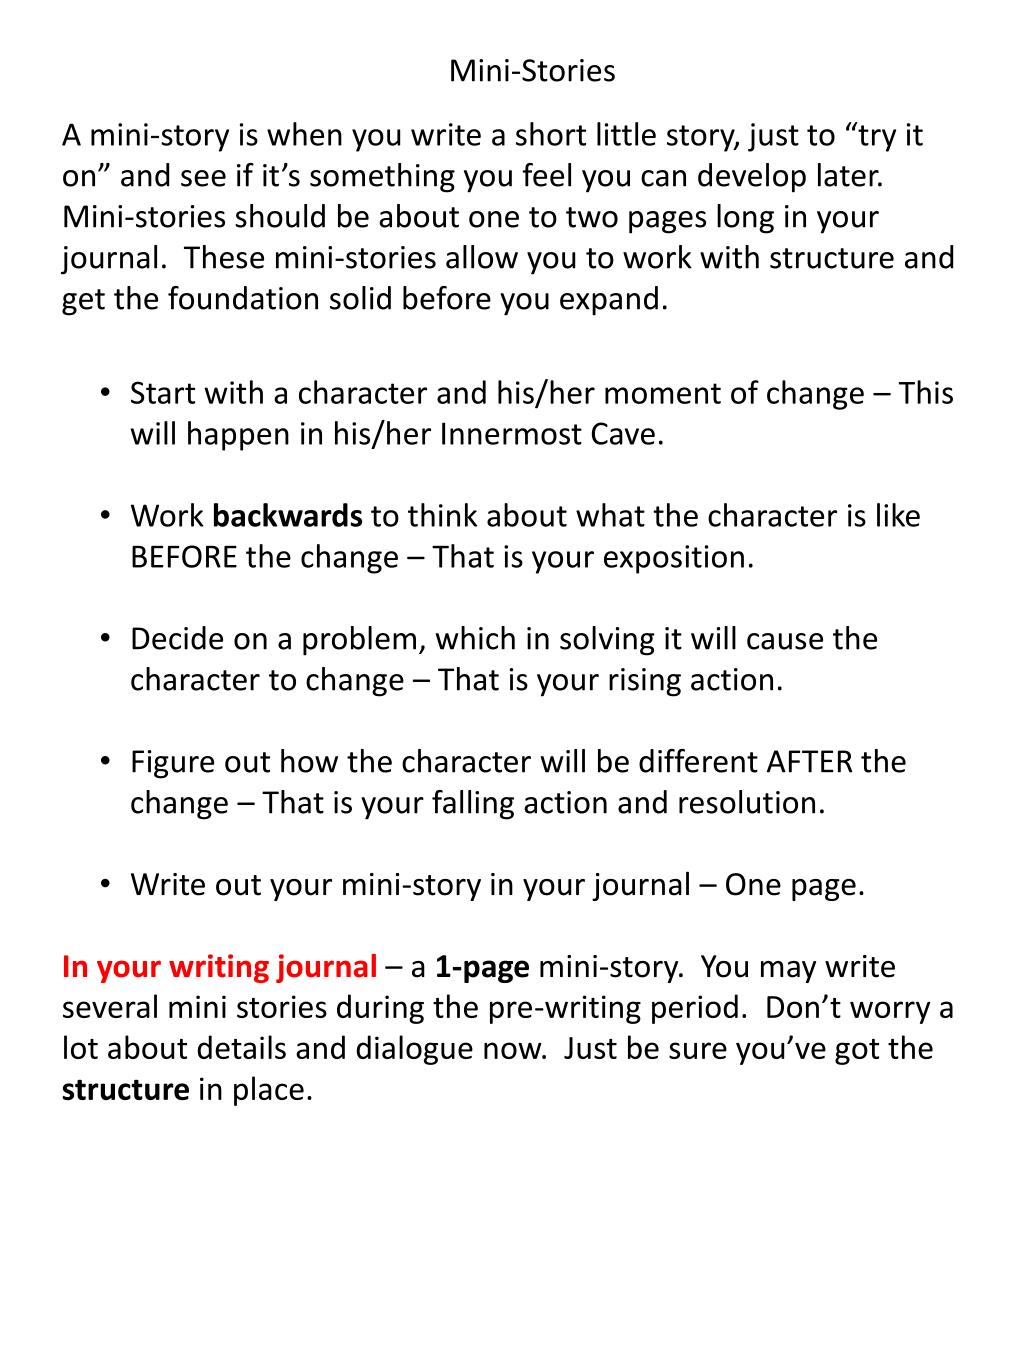 PPT - Steps for Writing a Short Story PowerPoint Presentation - ID